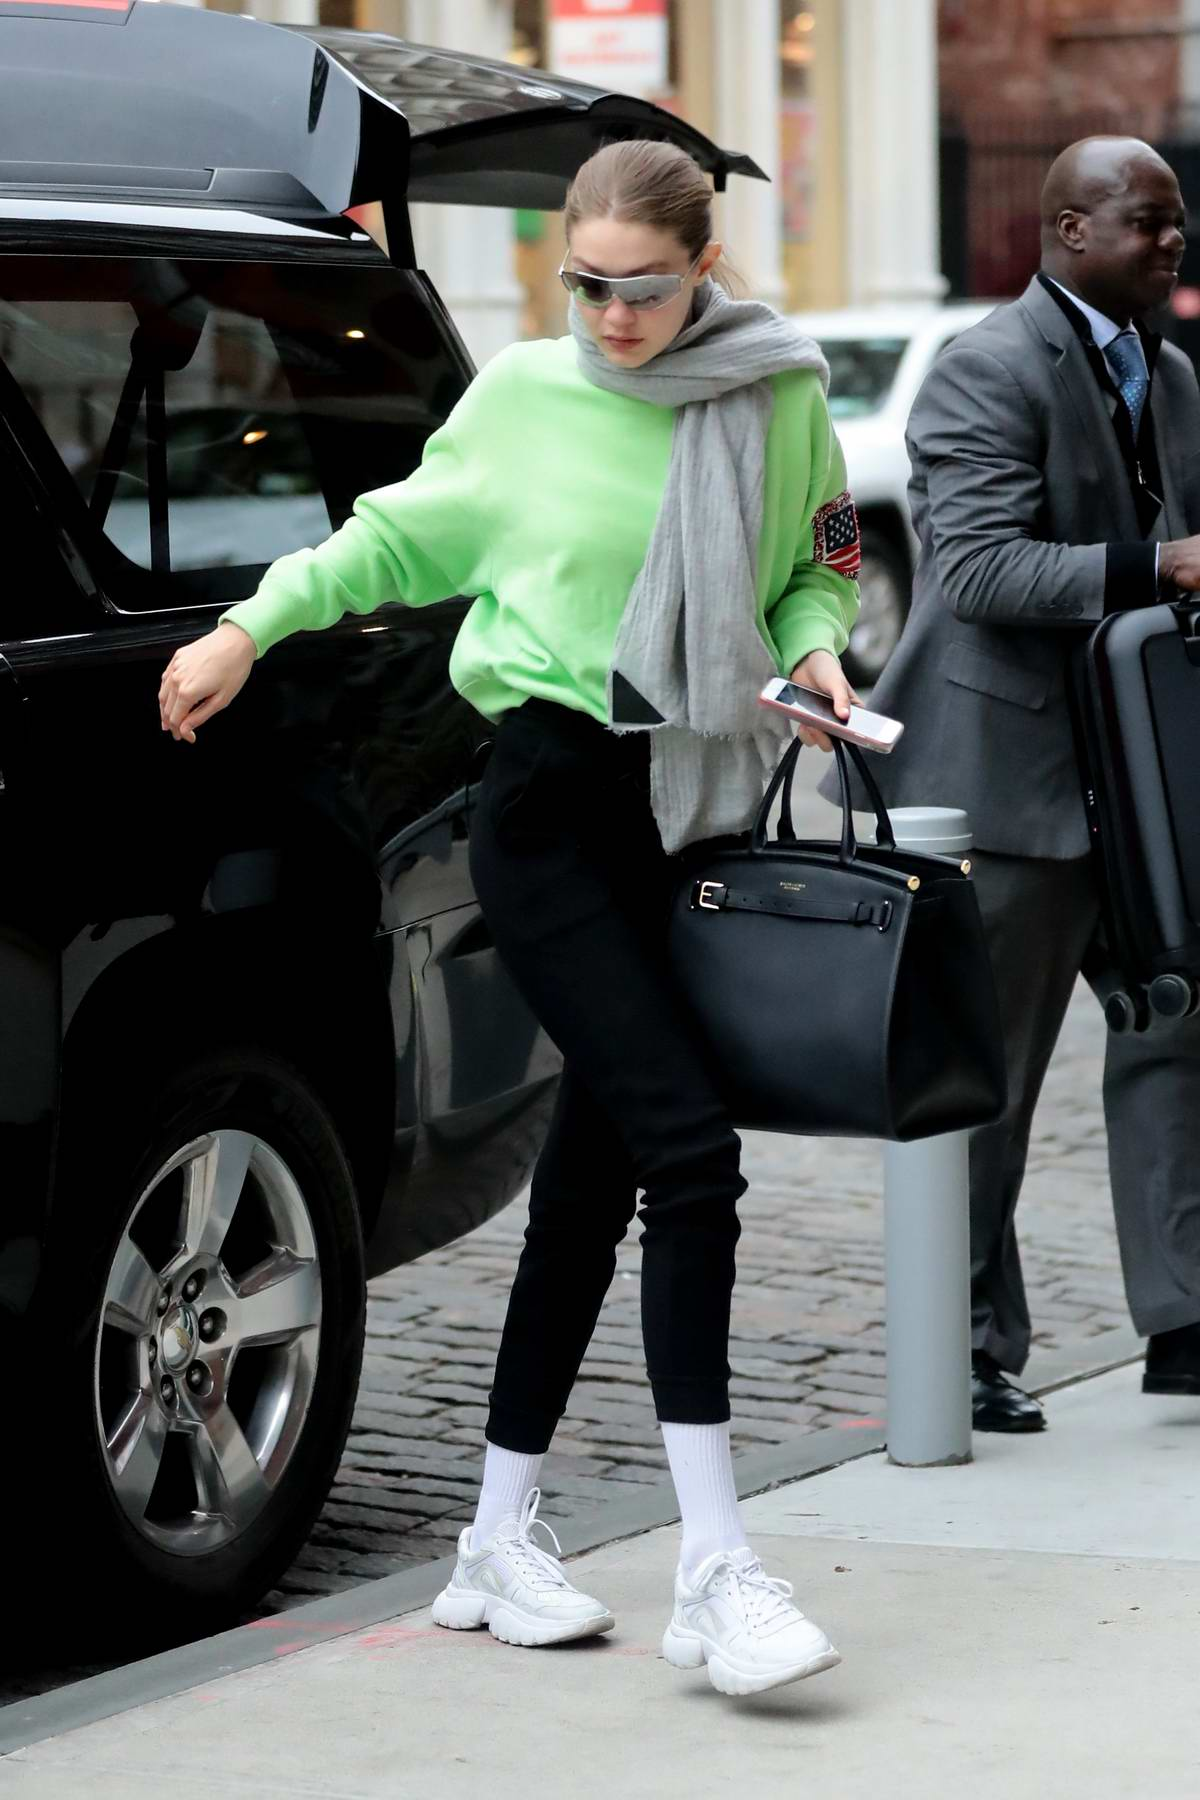 Gigi Hadid keeps it trendy in a lime green sweatshirt as she arrives at her apartment in Manhattan, New York City